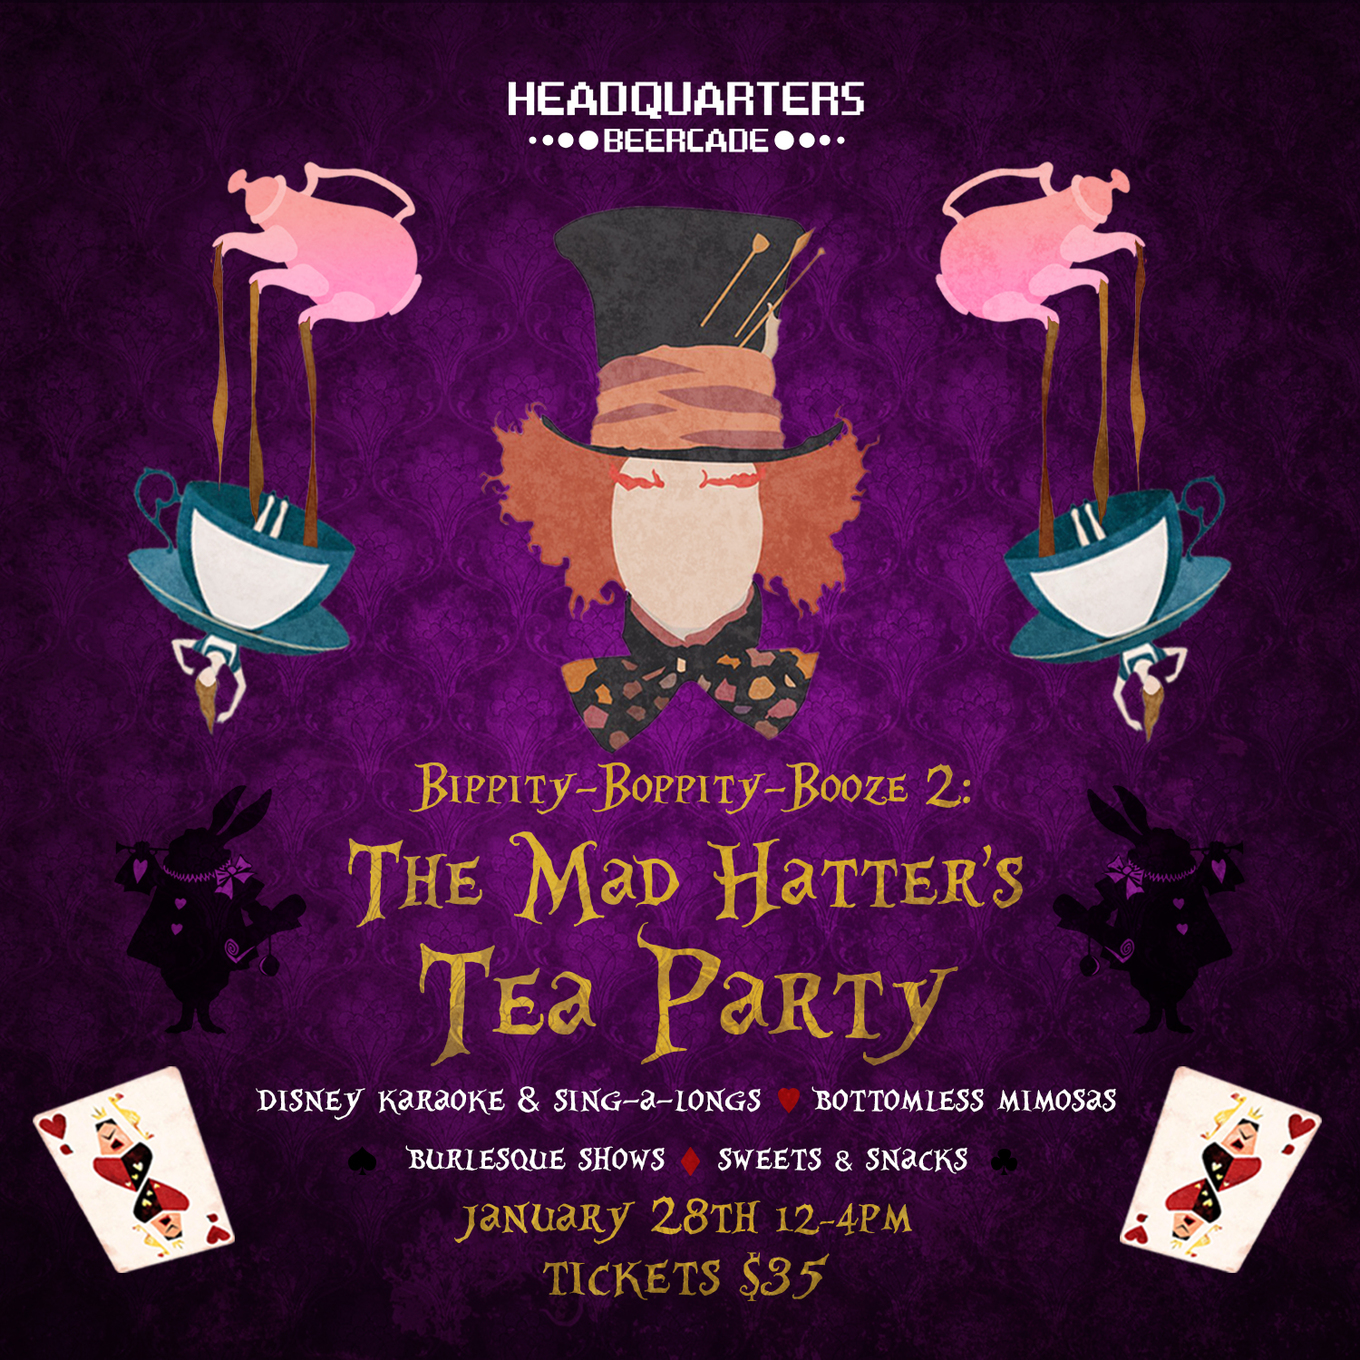 The Mad Hatter S Tea Party Tickets Headquarters Beercade River North Chicago Il January 28 2018